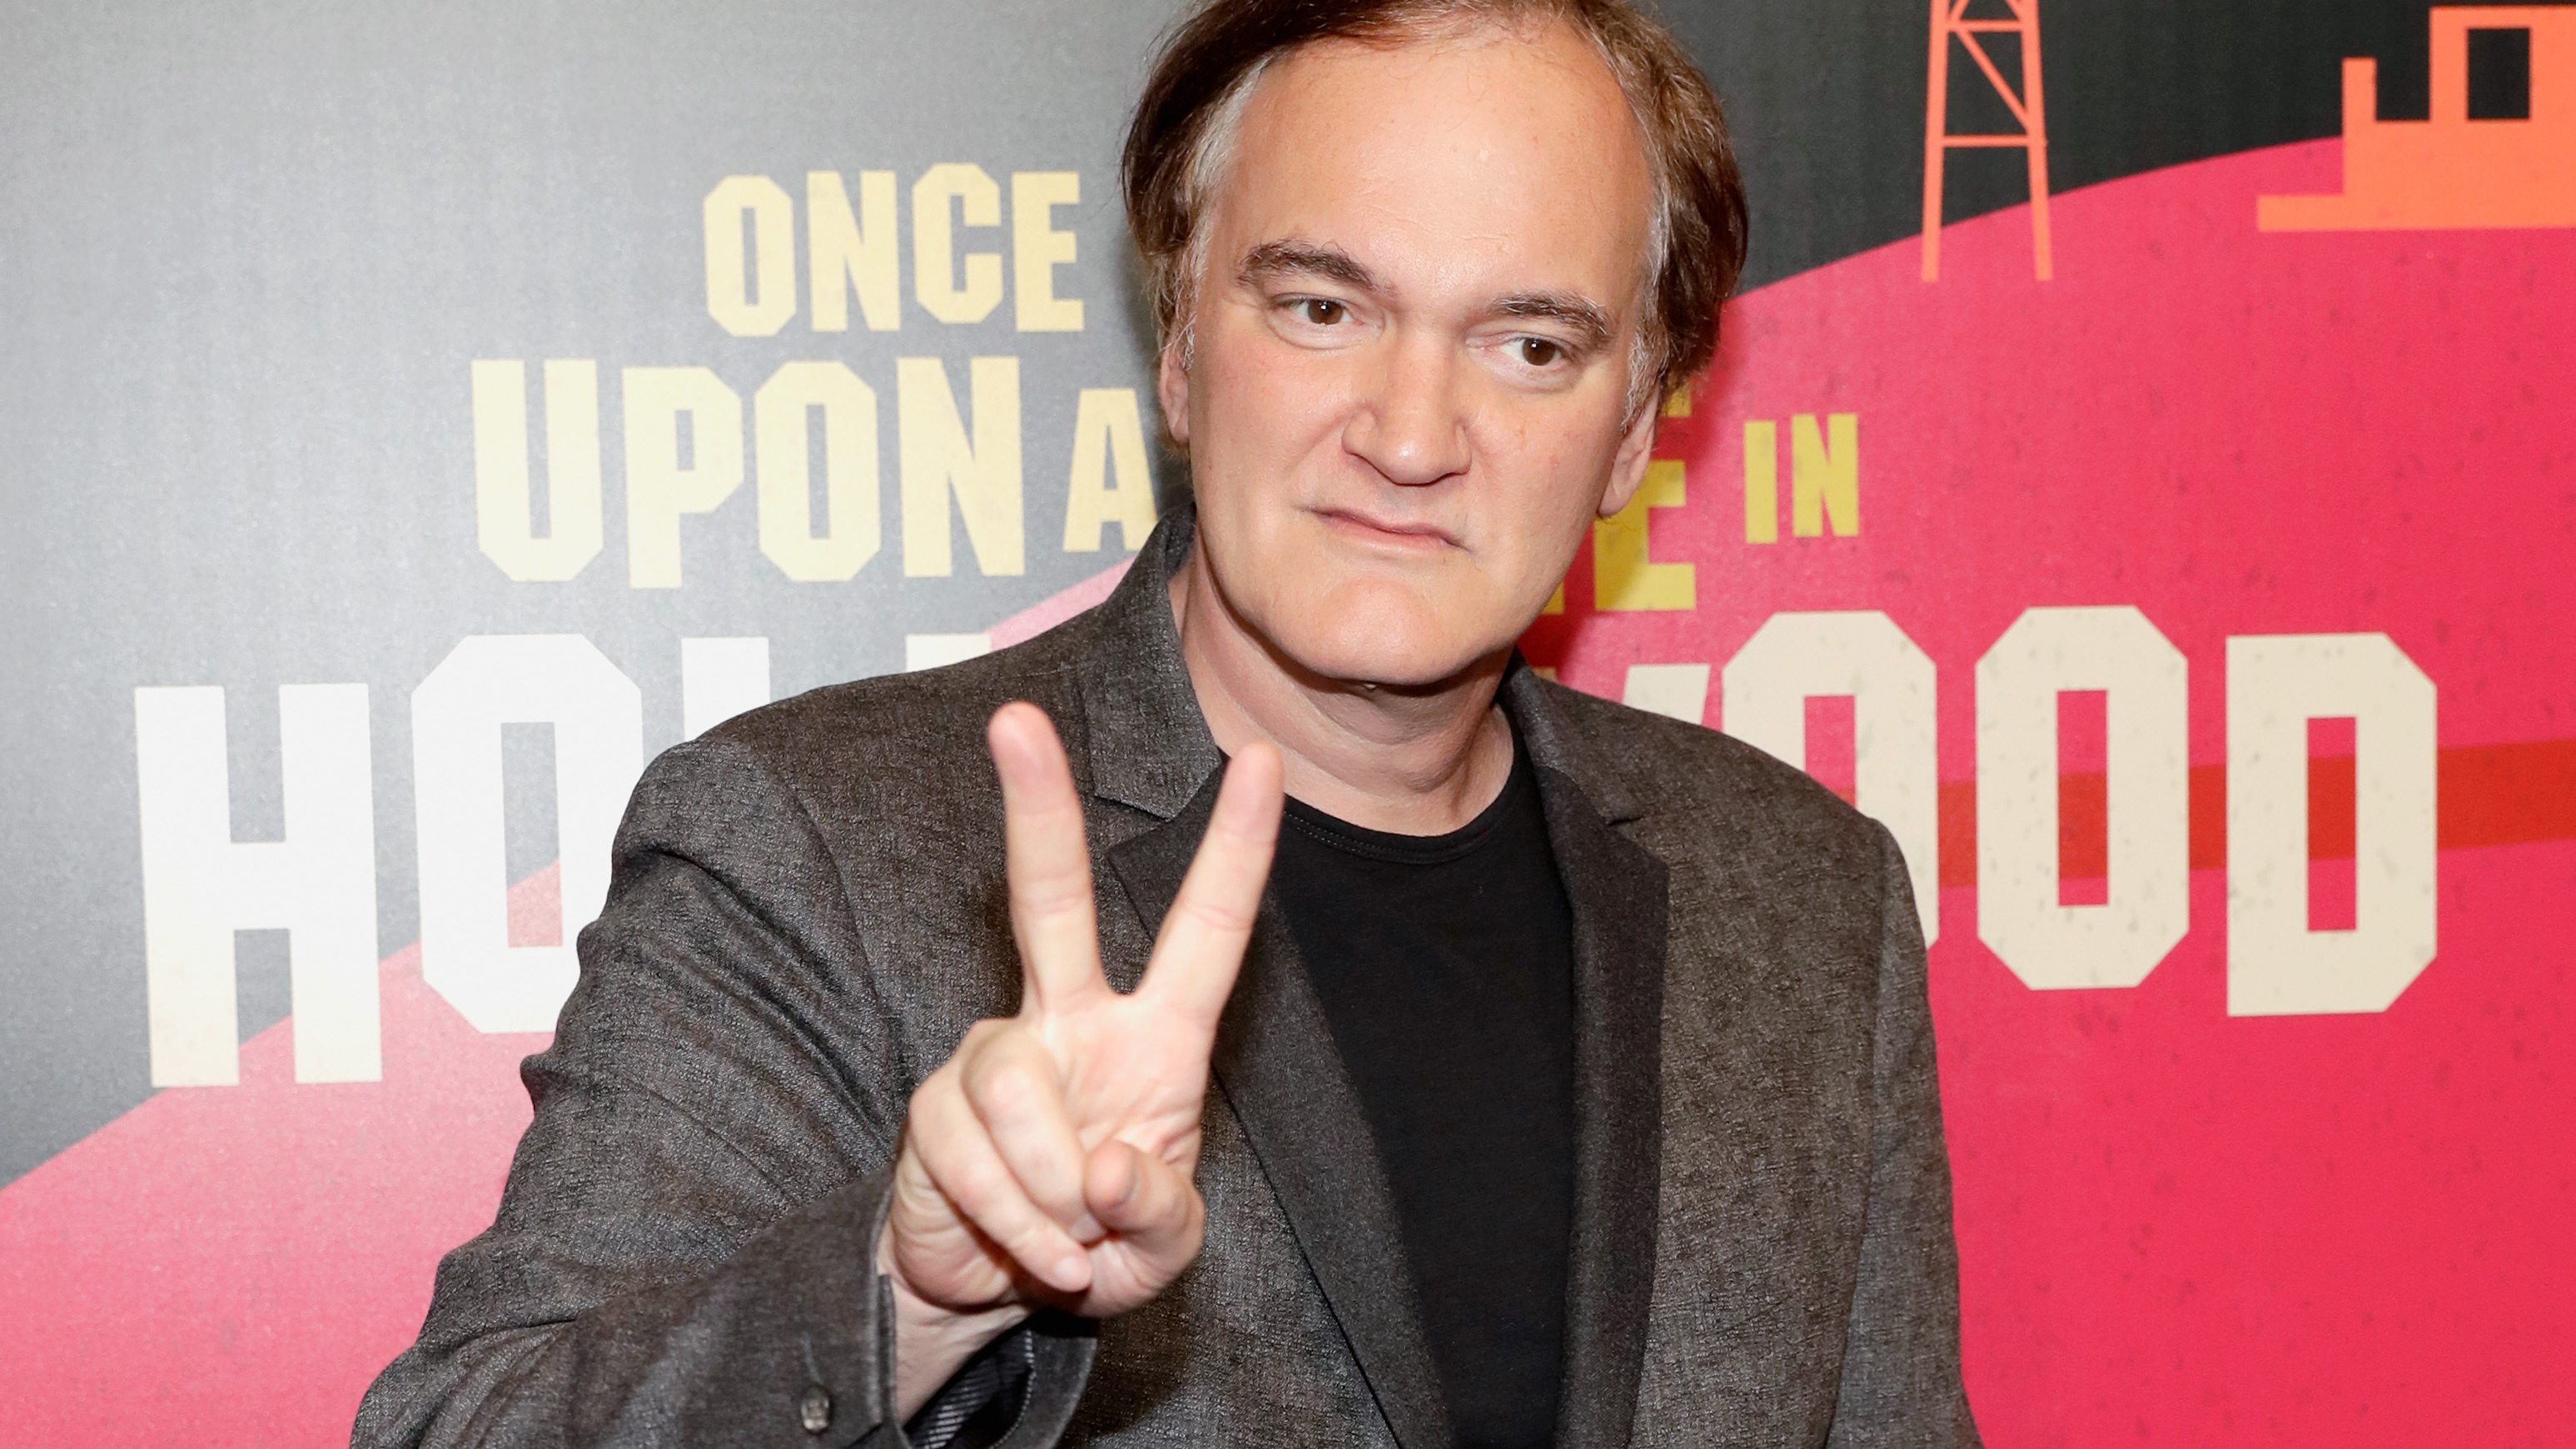 Once Upon A Time in... Hollywood: ces stars coupées au montage par Quentin Tarantino